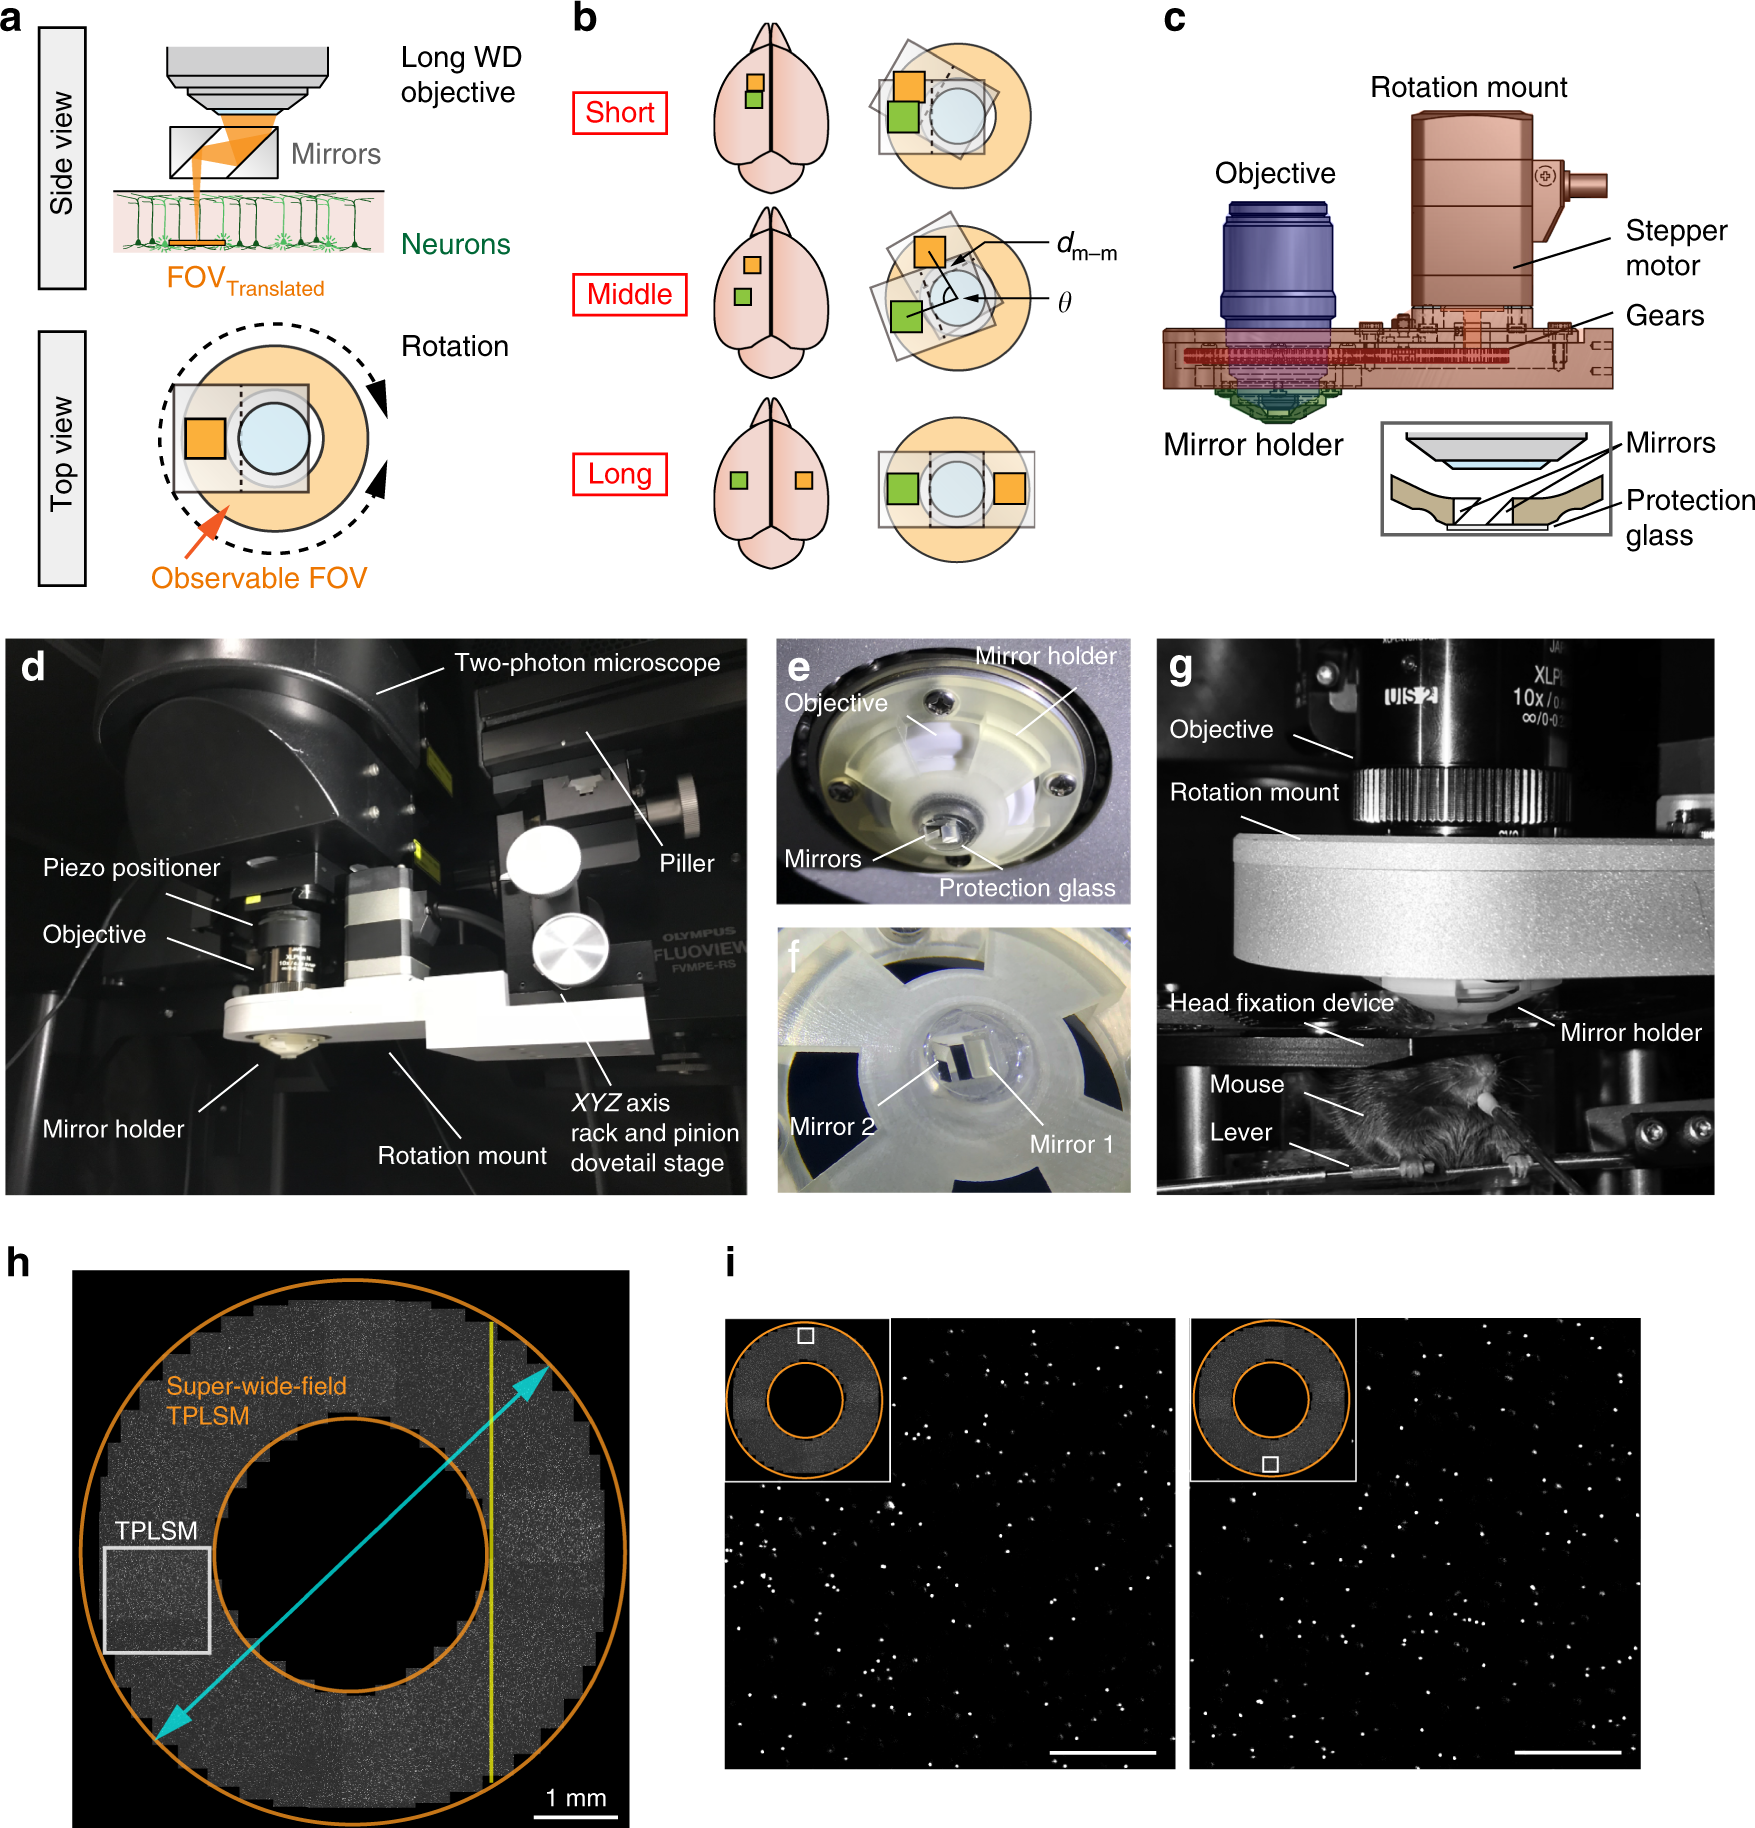 Super-wide-field two-photon imaging with a micro-optical